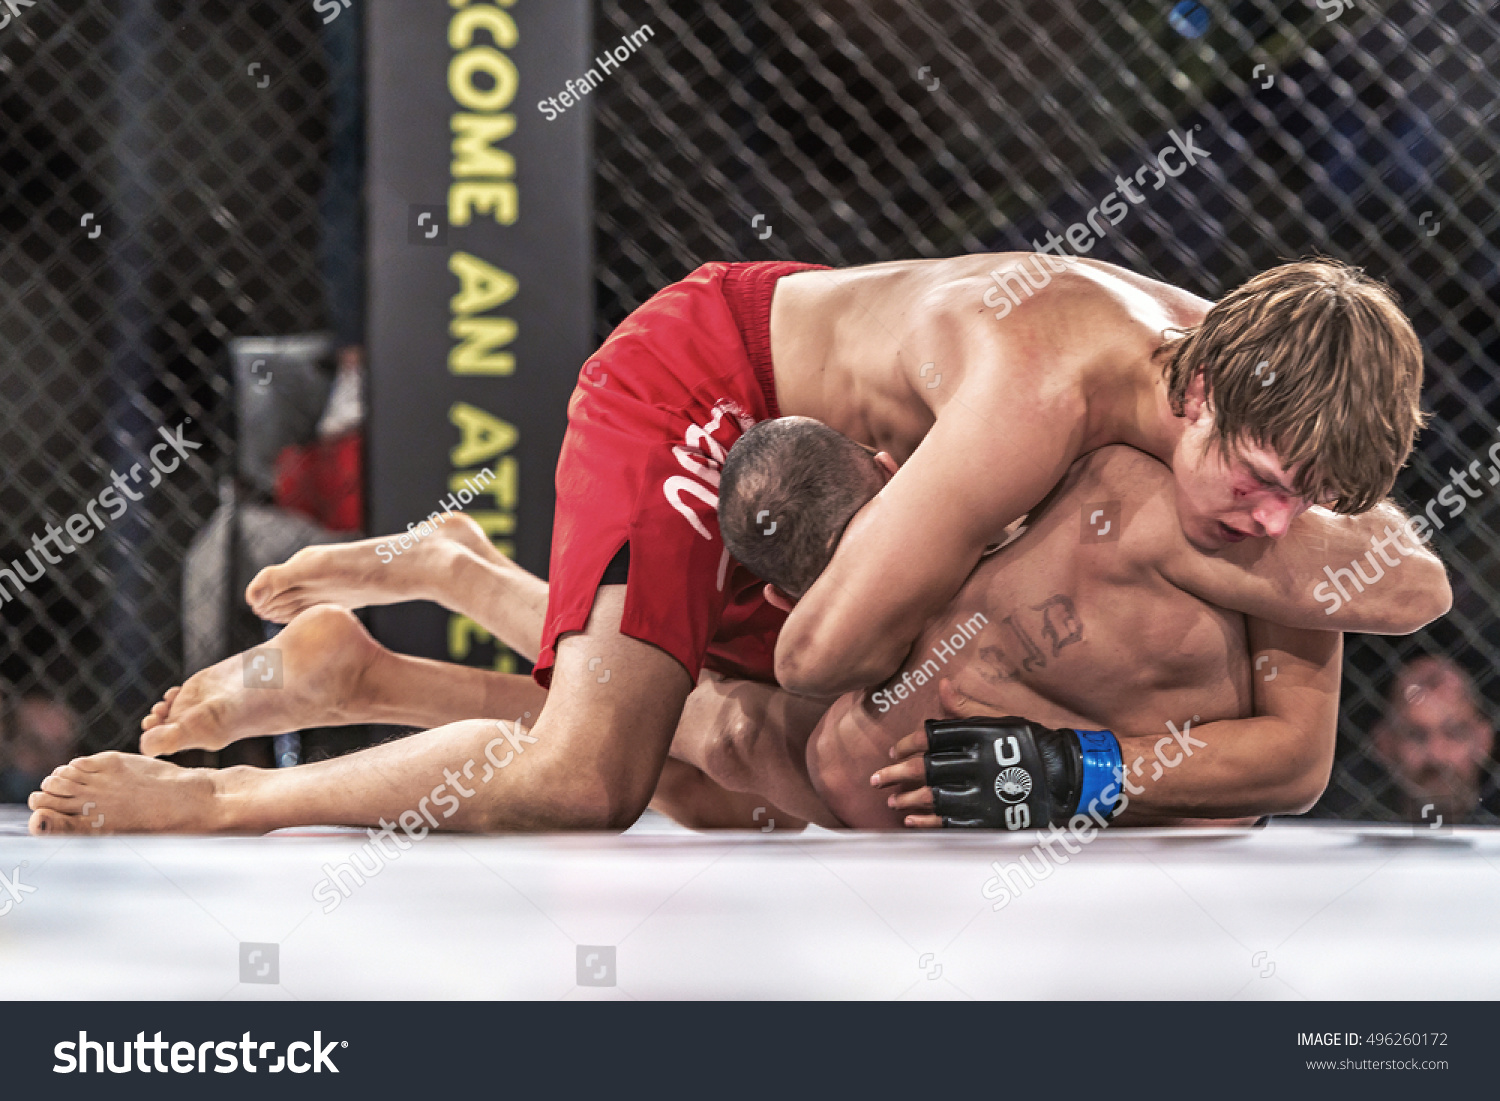 stockholm oct 8 2016 fight between stock photo 496260172 stockholm oct 8 2016 fight between saeed ganji vs patrik pitela at superior